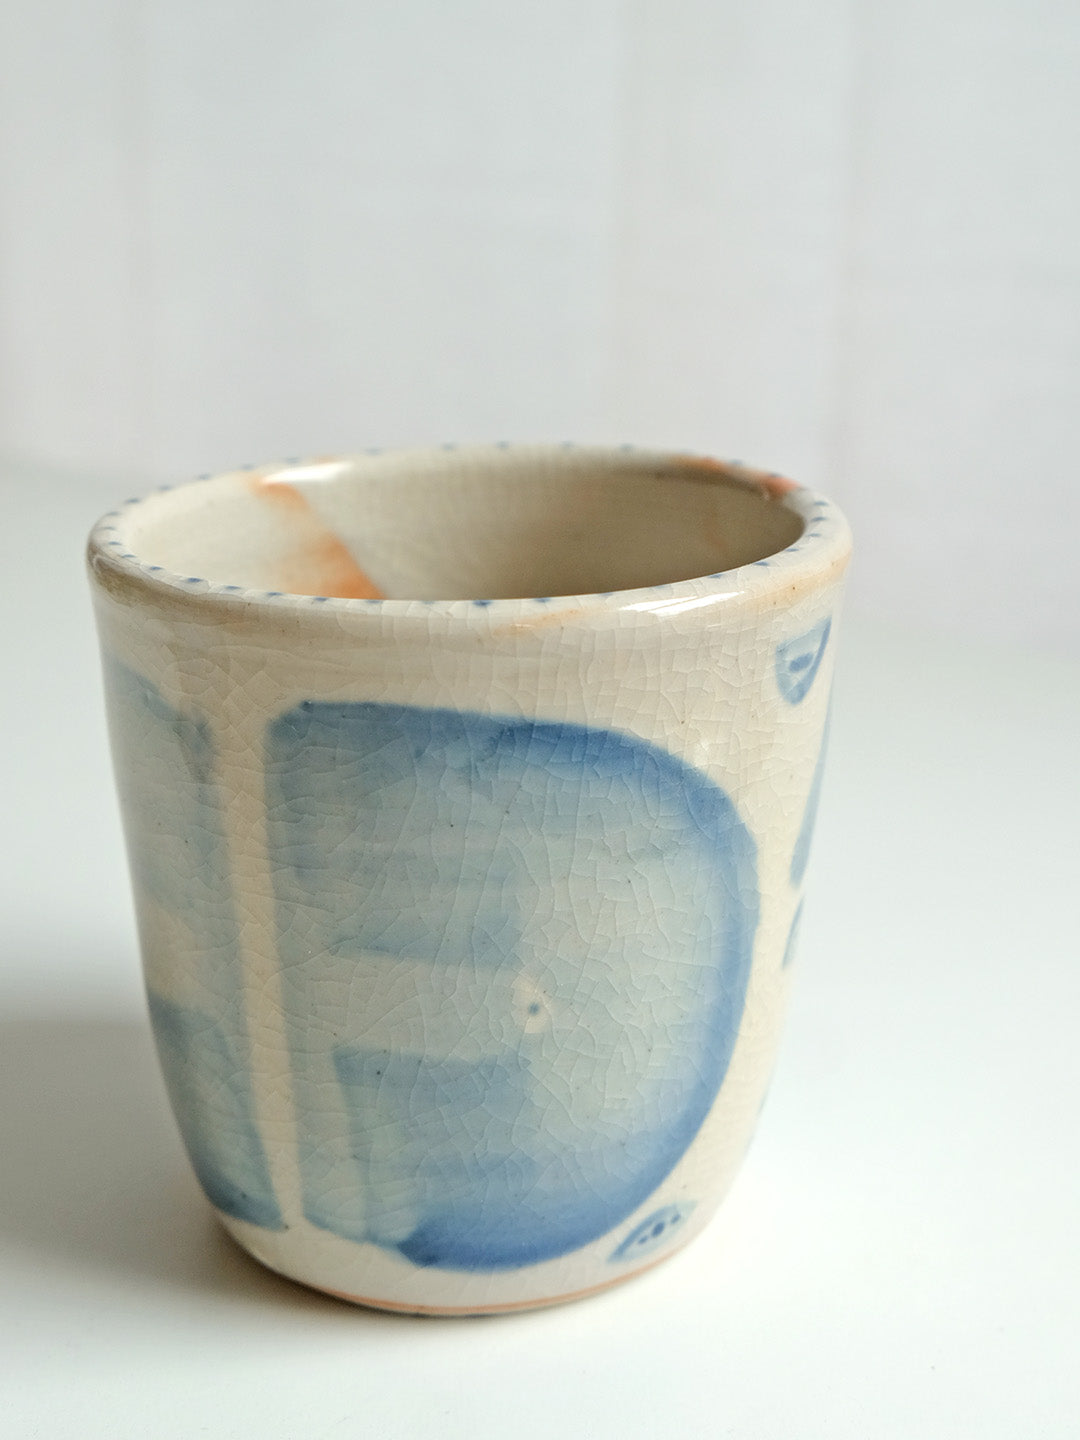 Paper Cup - Fantasier no. 2